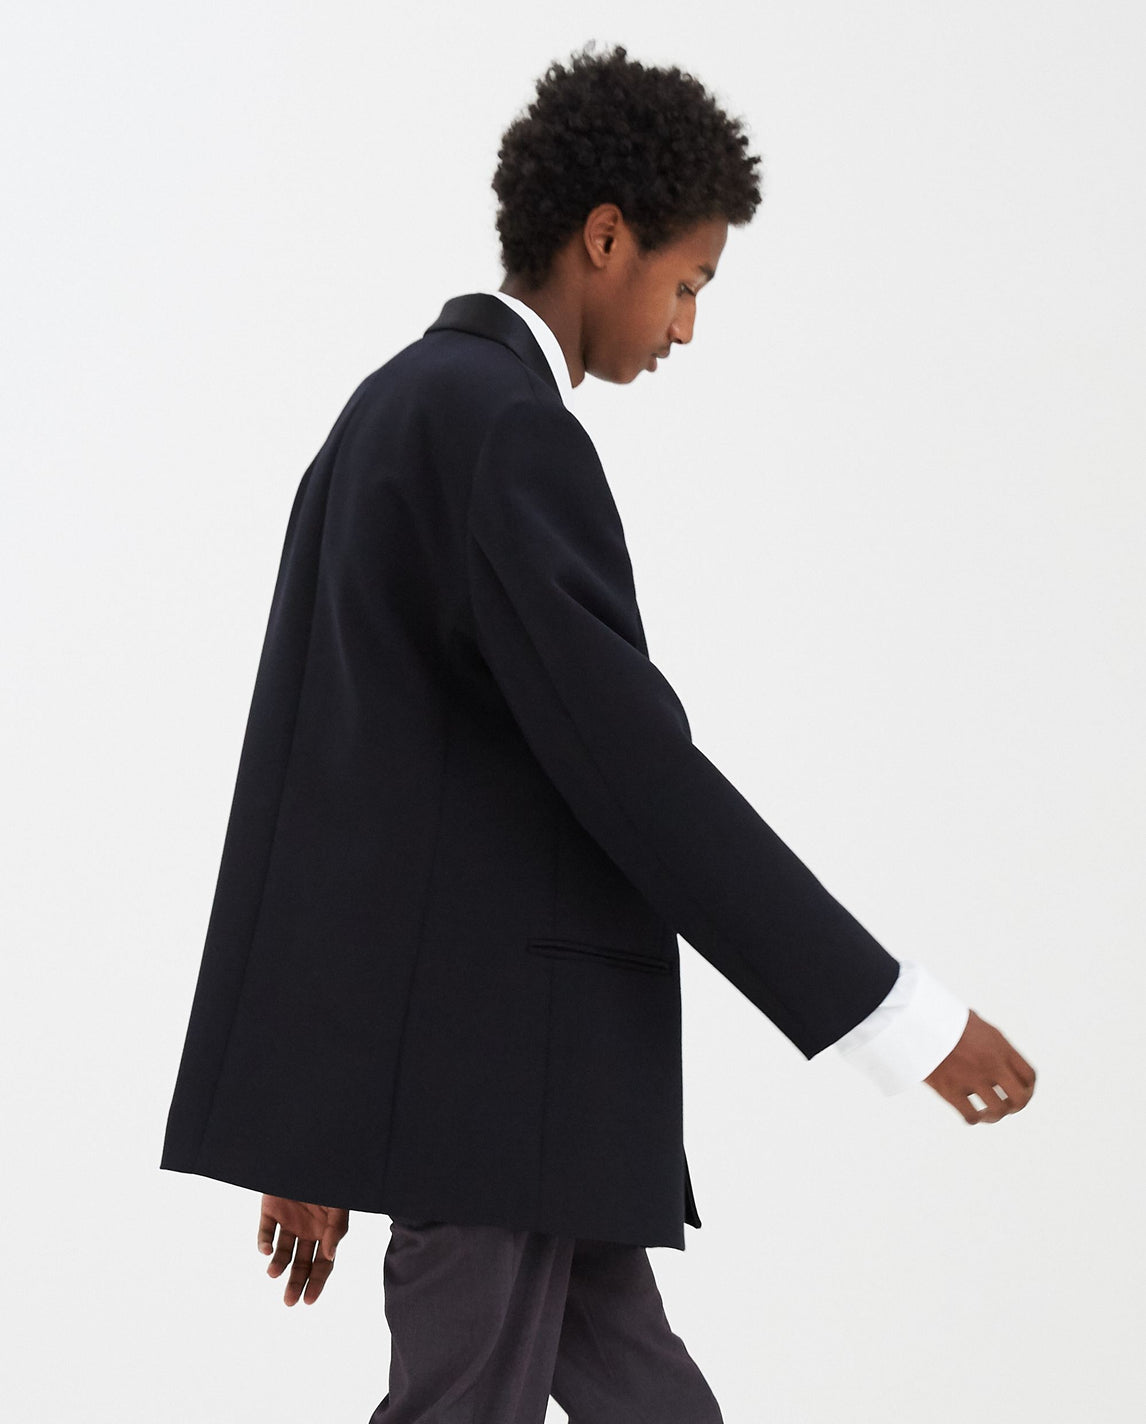 Boxy Smoking Blazer - Dark Navy MENS RAF SIMONS